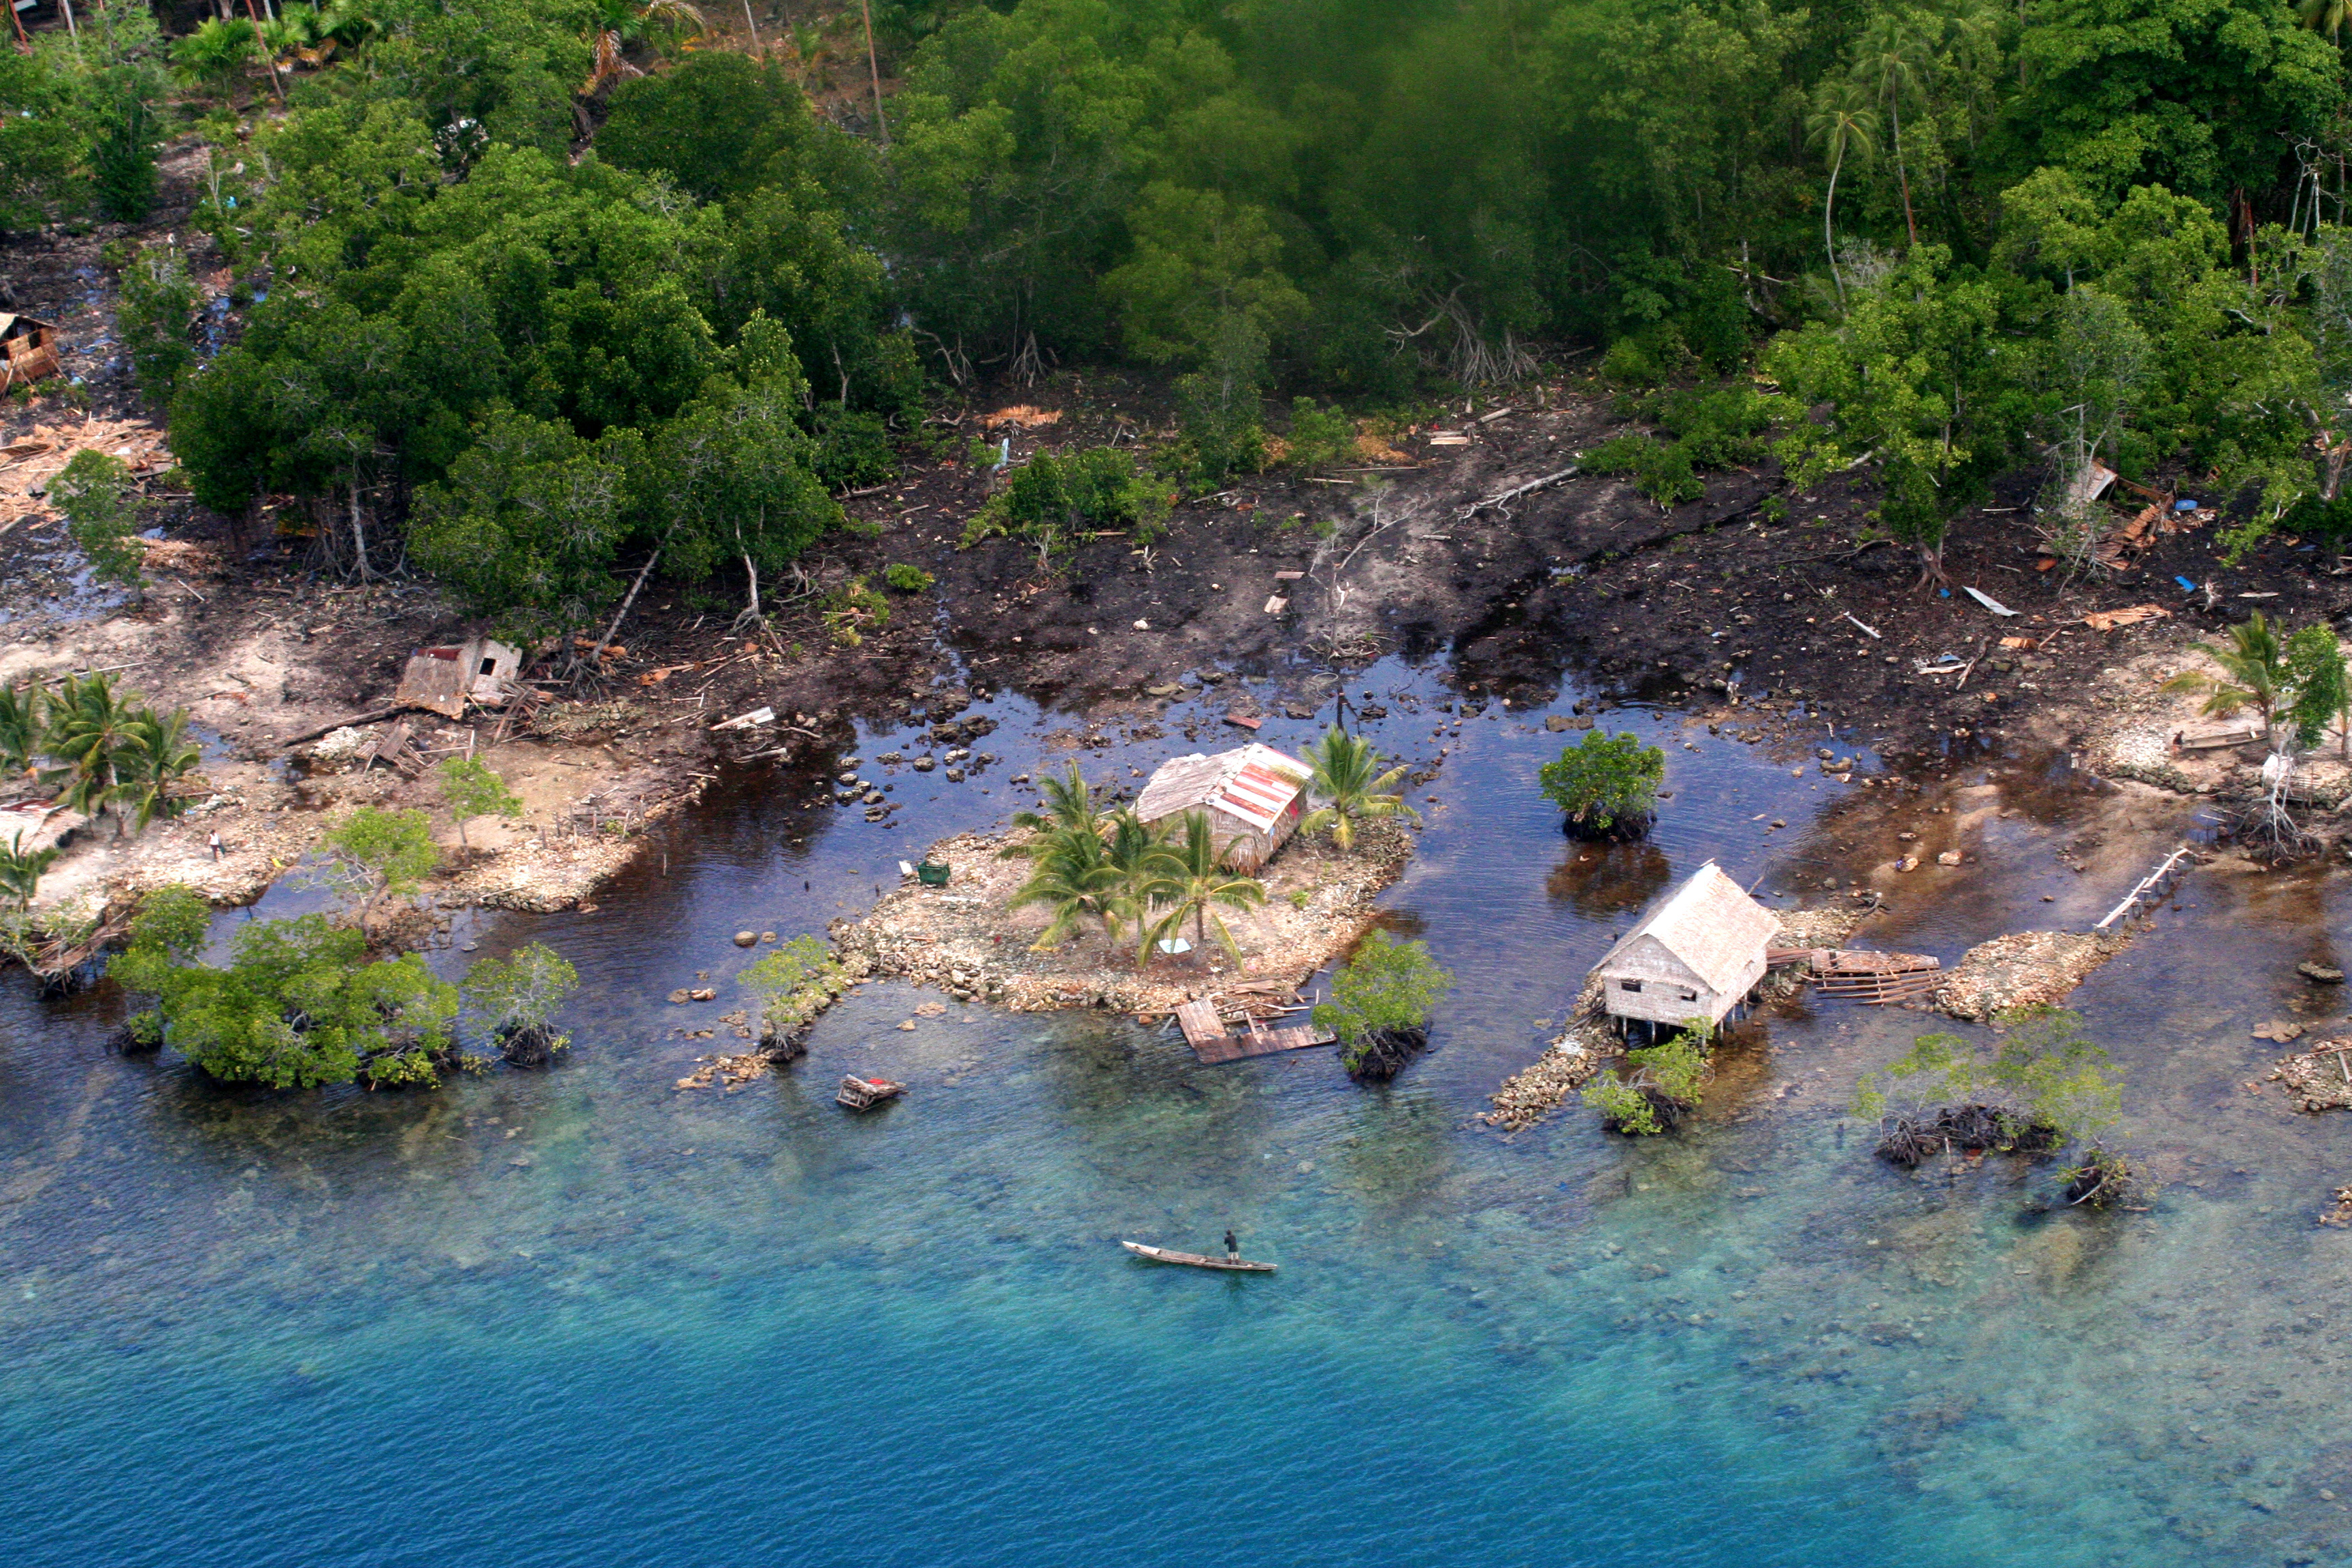 Solomon Islands climate change effects - Earth Day - PicsArt Blog